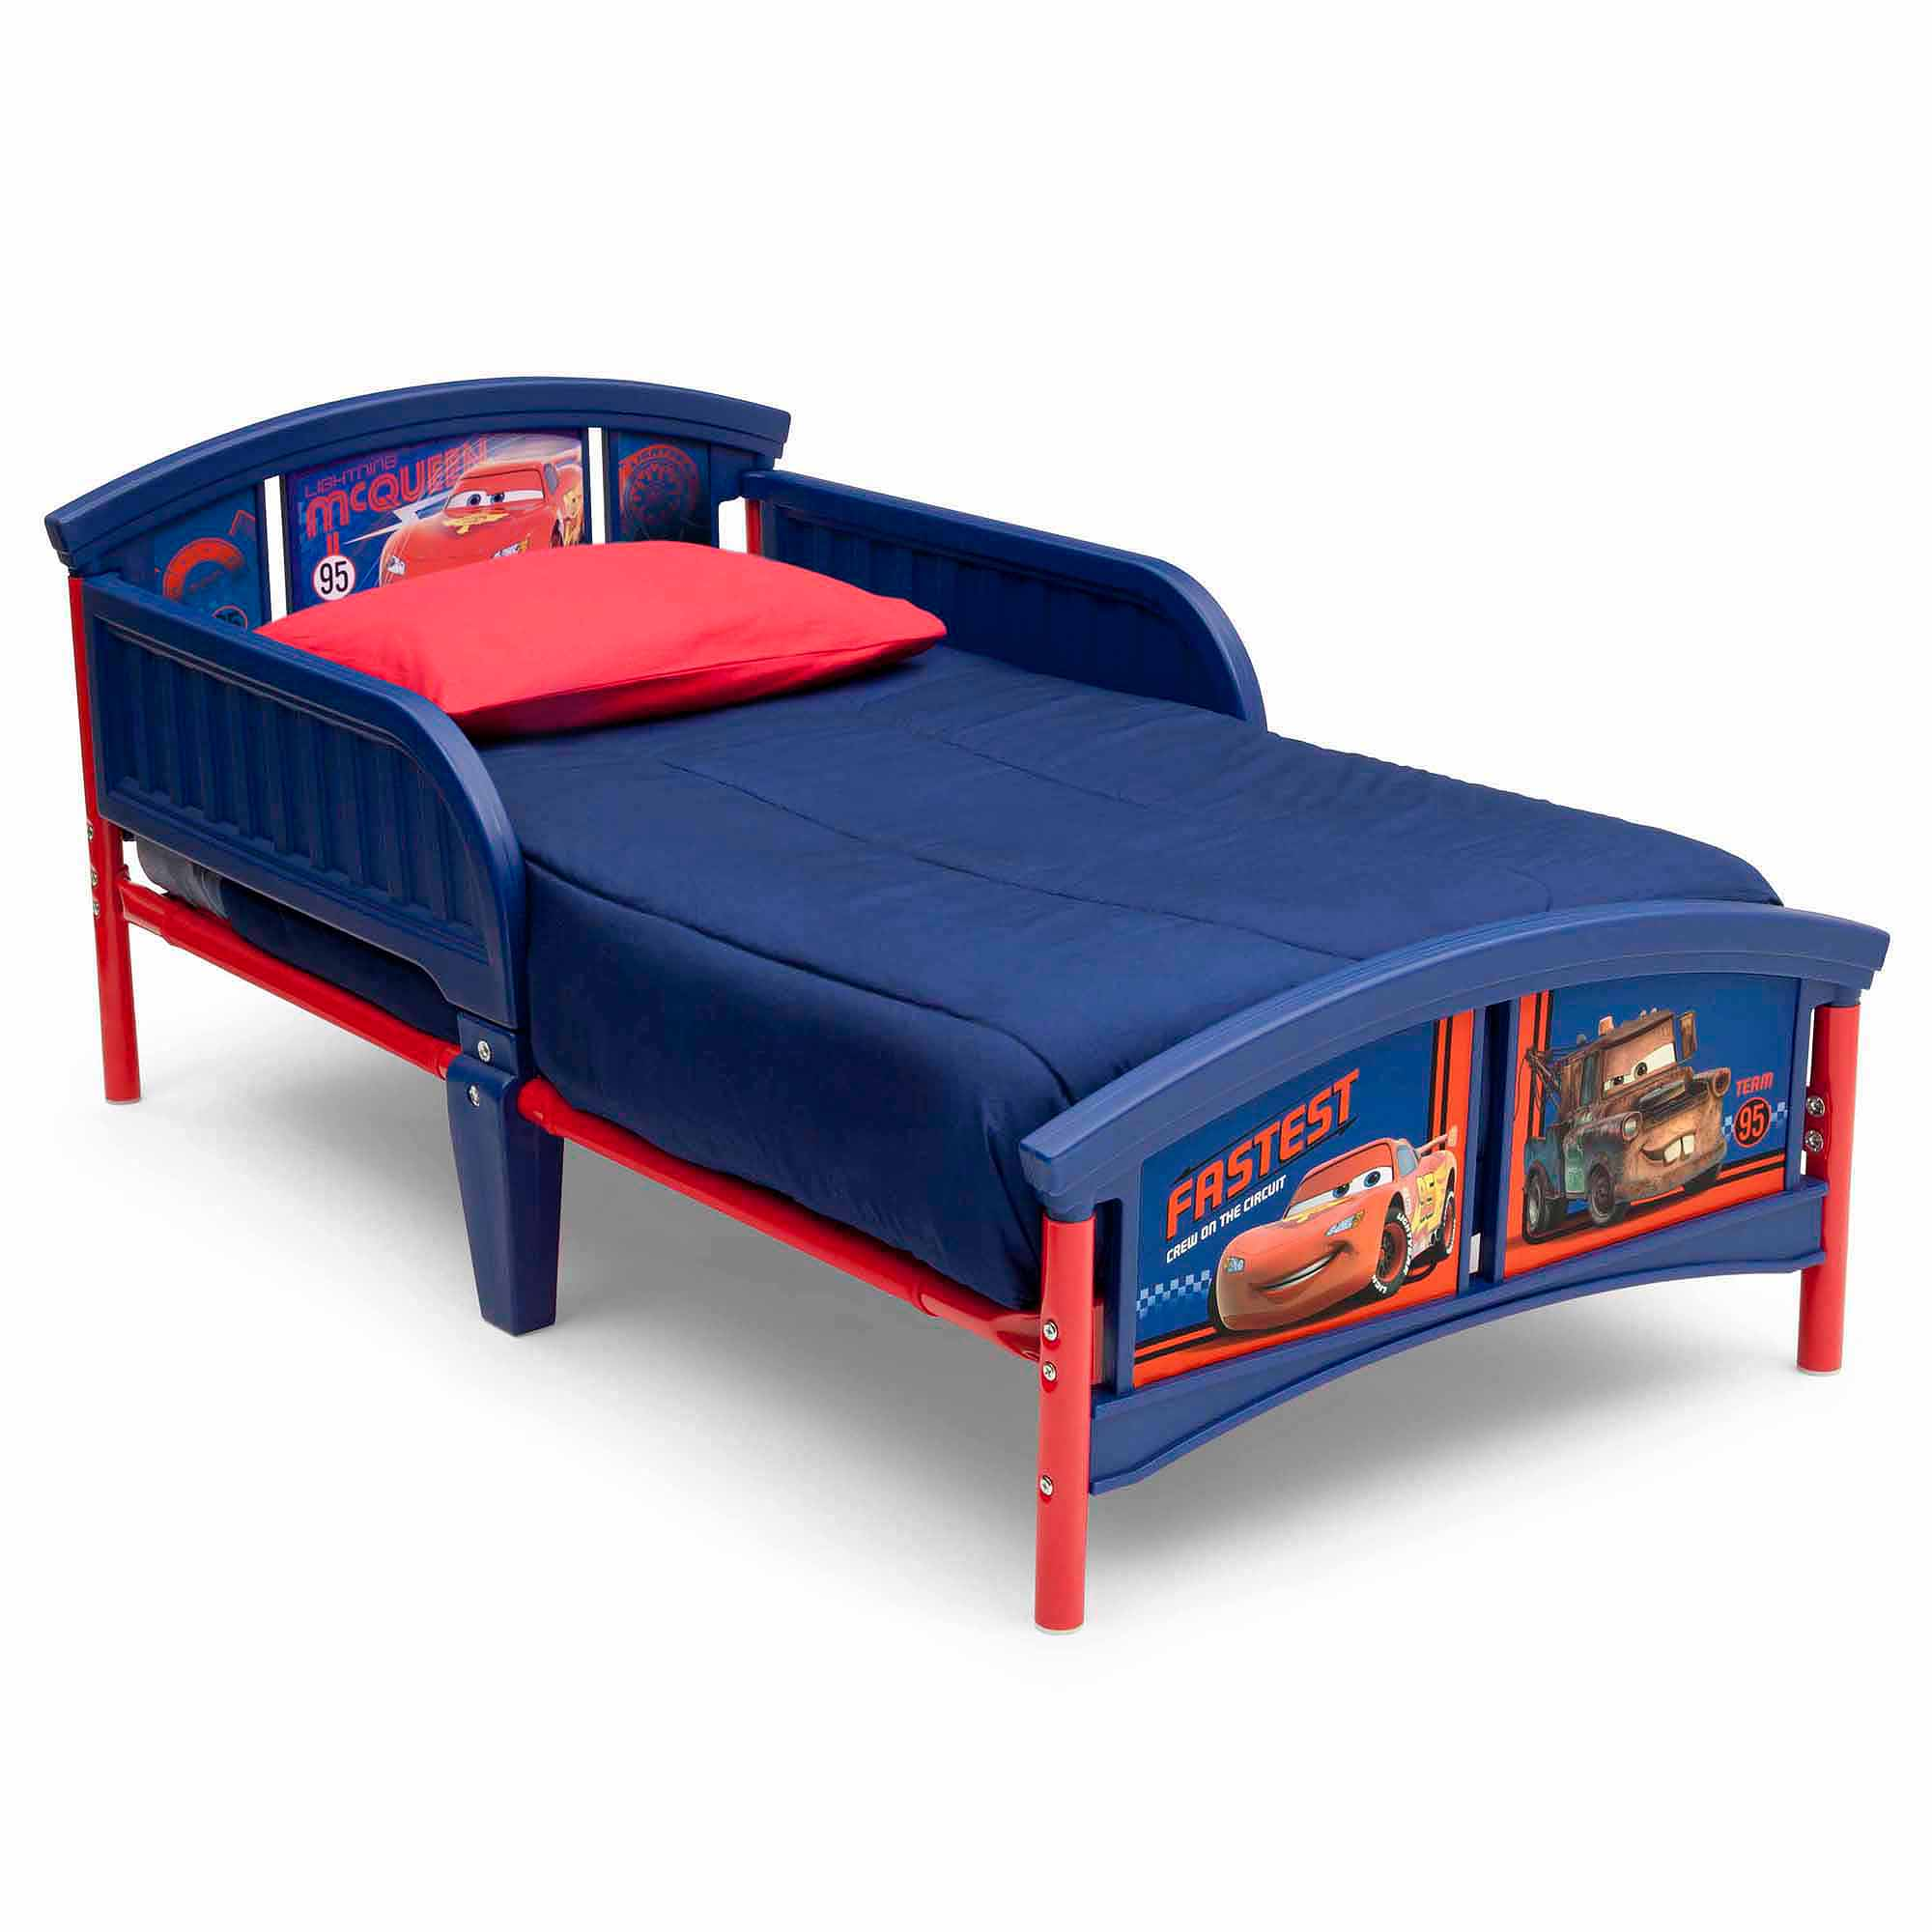 Disney Cars Bedroom Set with BONUS Toy Organizer - Walmart.com